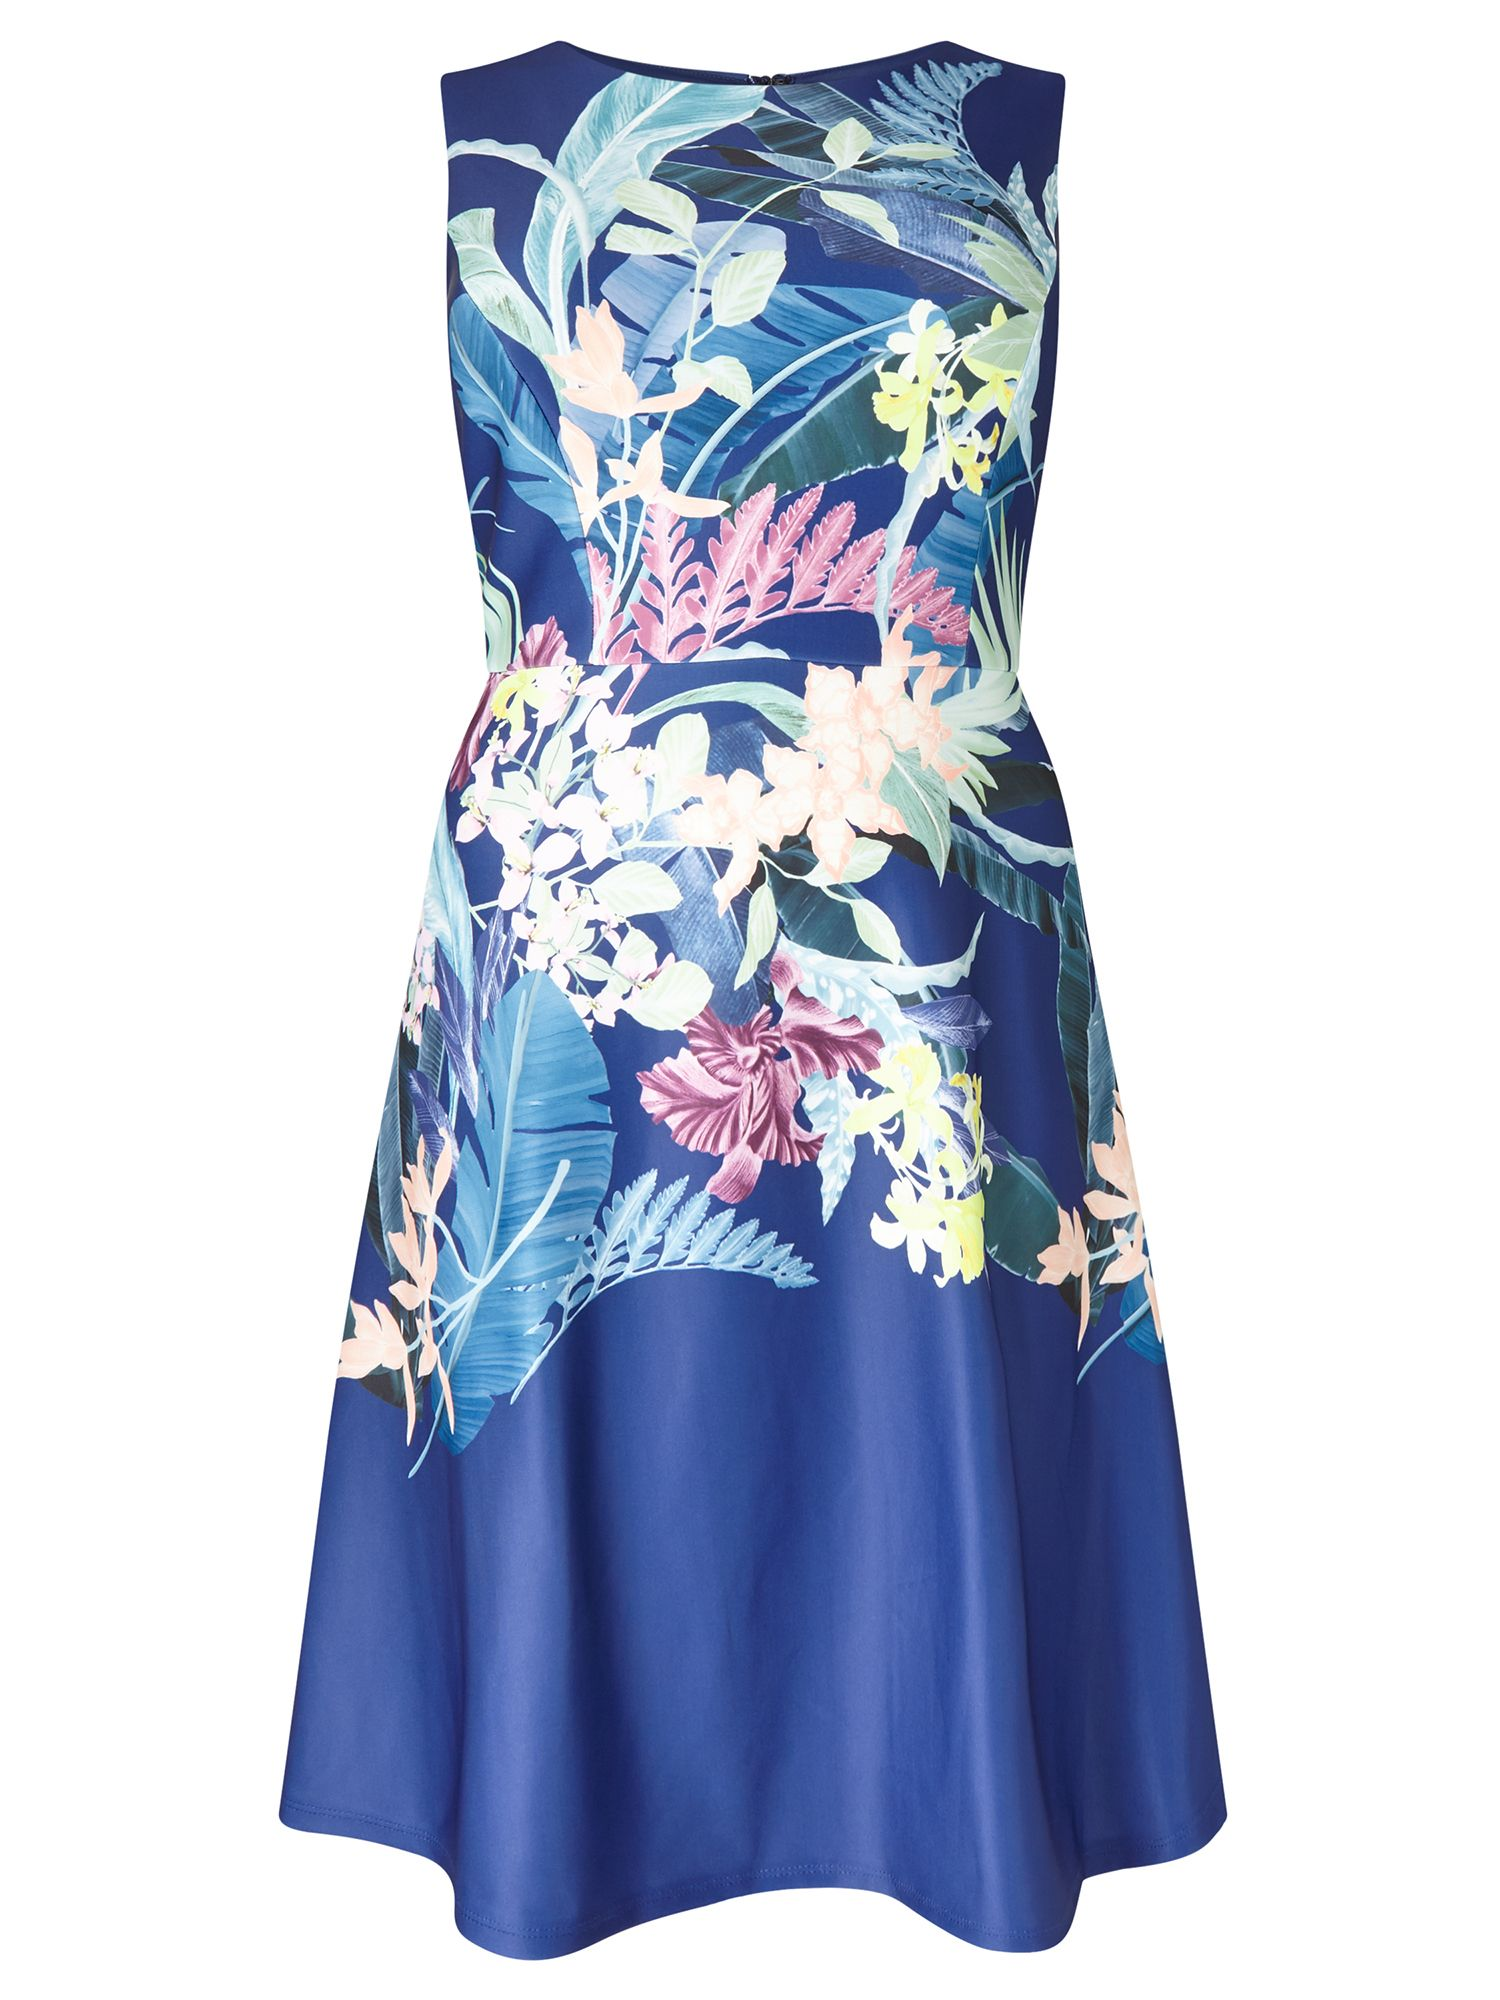 Adrianna Papell Floral Dress, Multi-Coloured